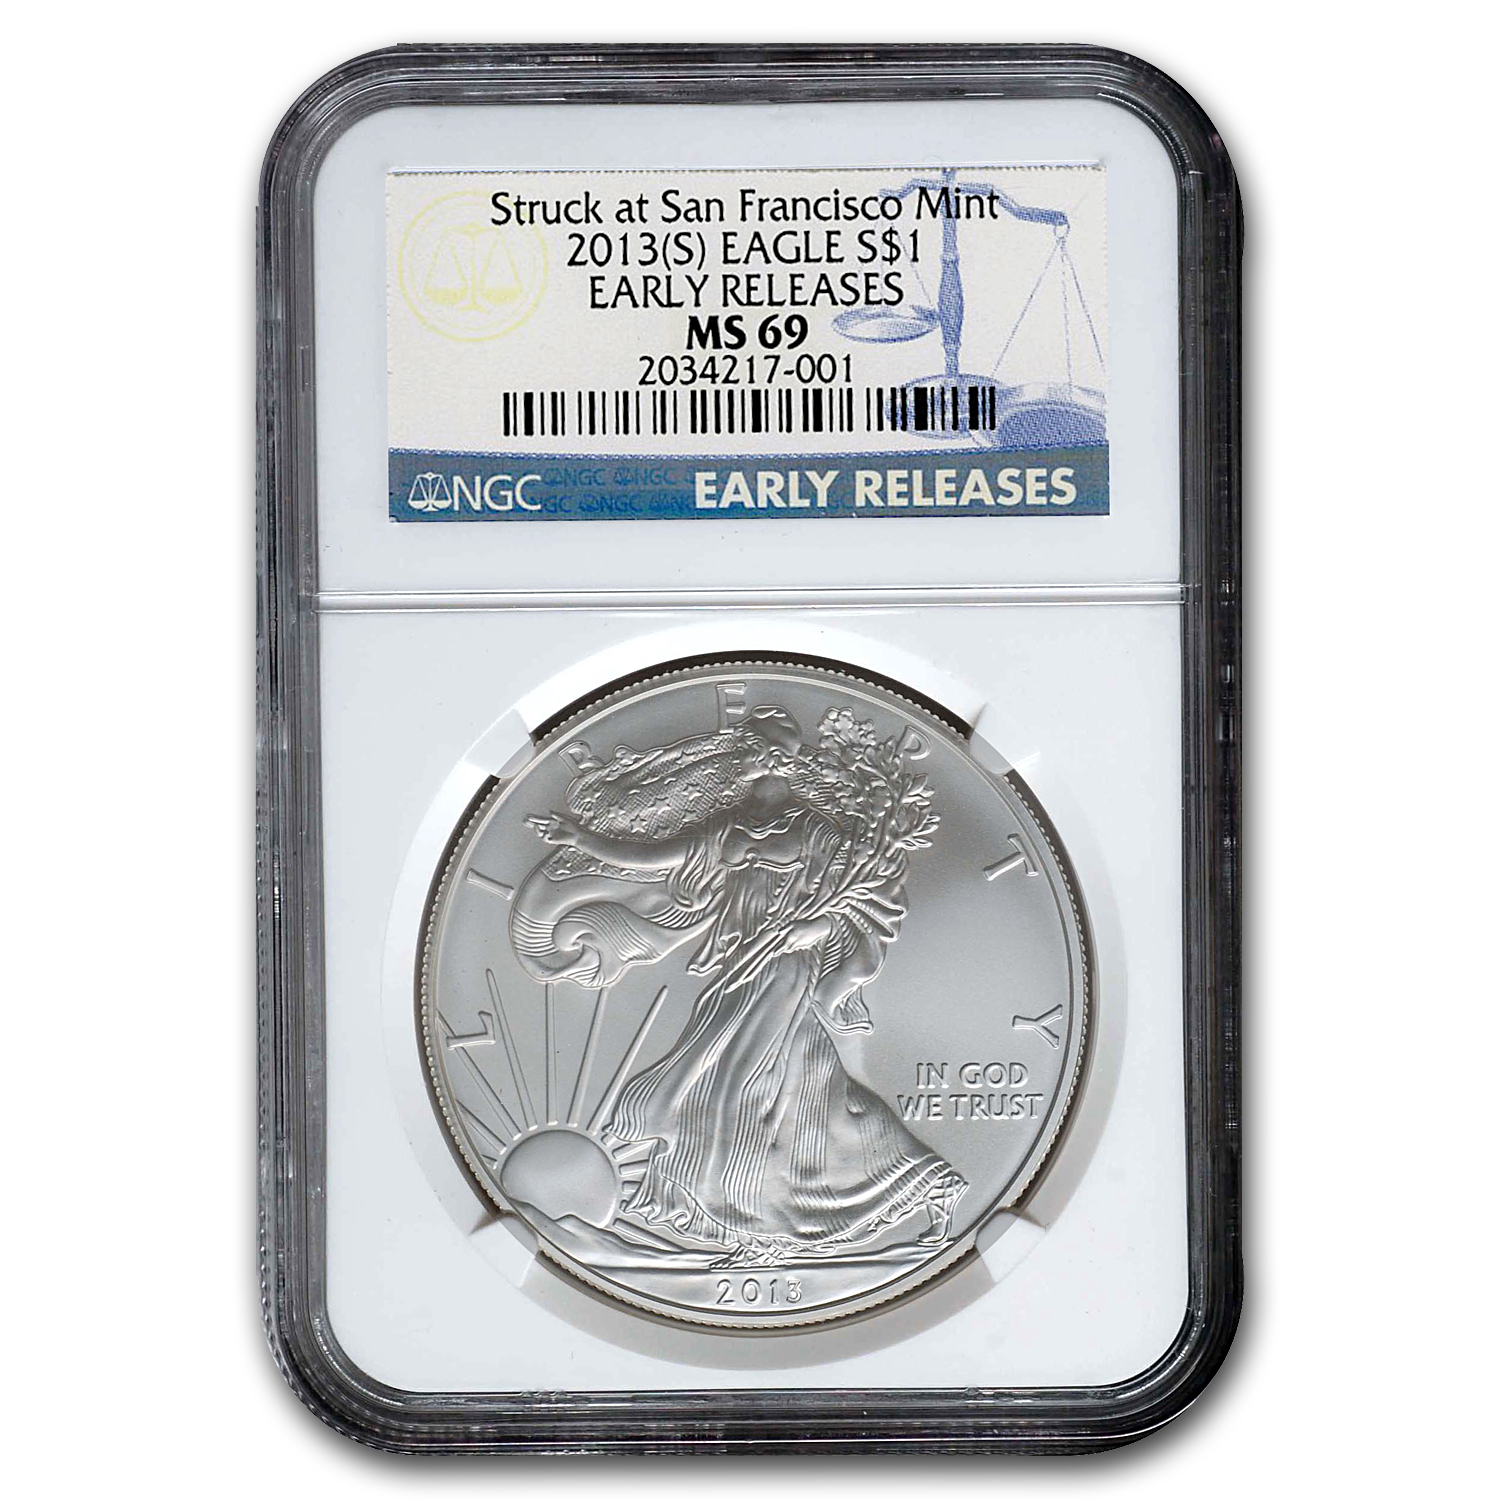 2013 (S) Silver American Eagle MS-69 NGC (Early Releases)